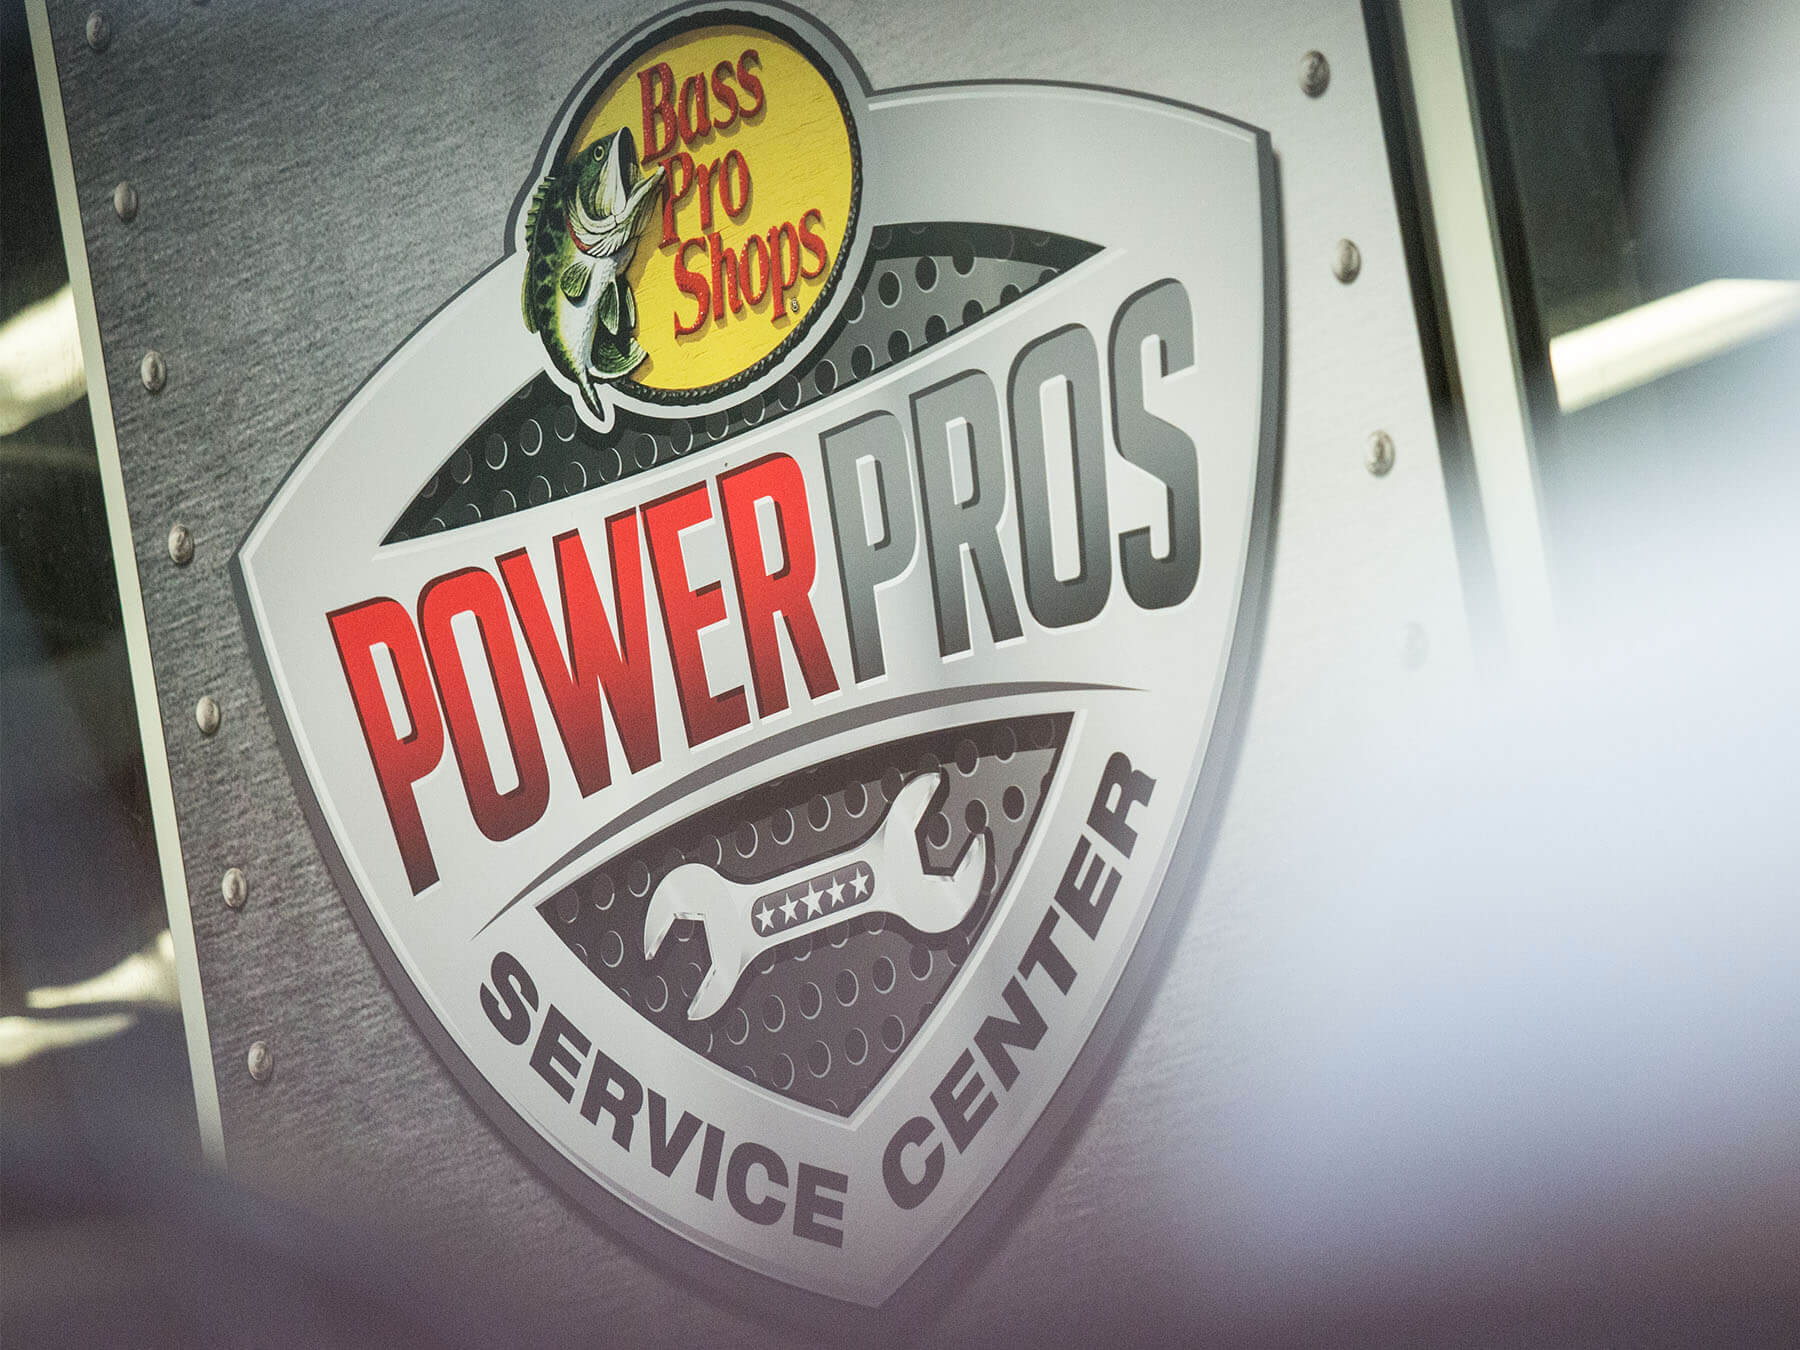 Bass pro shops power pros service center wall logo